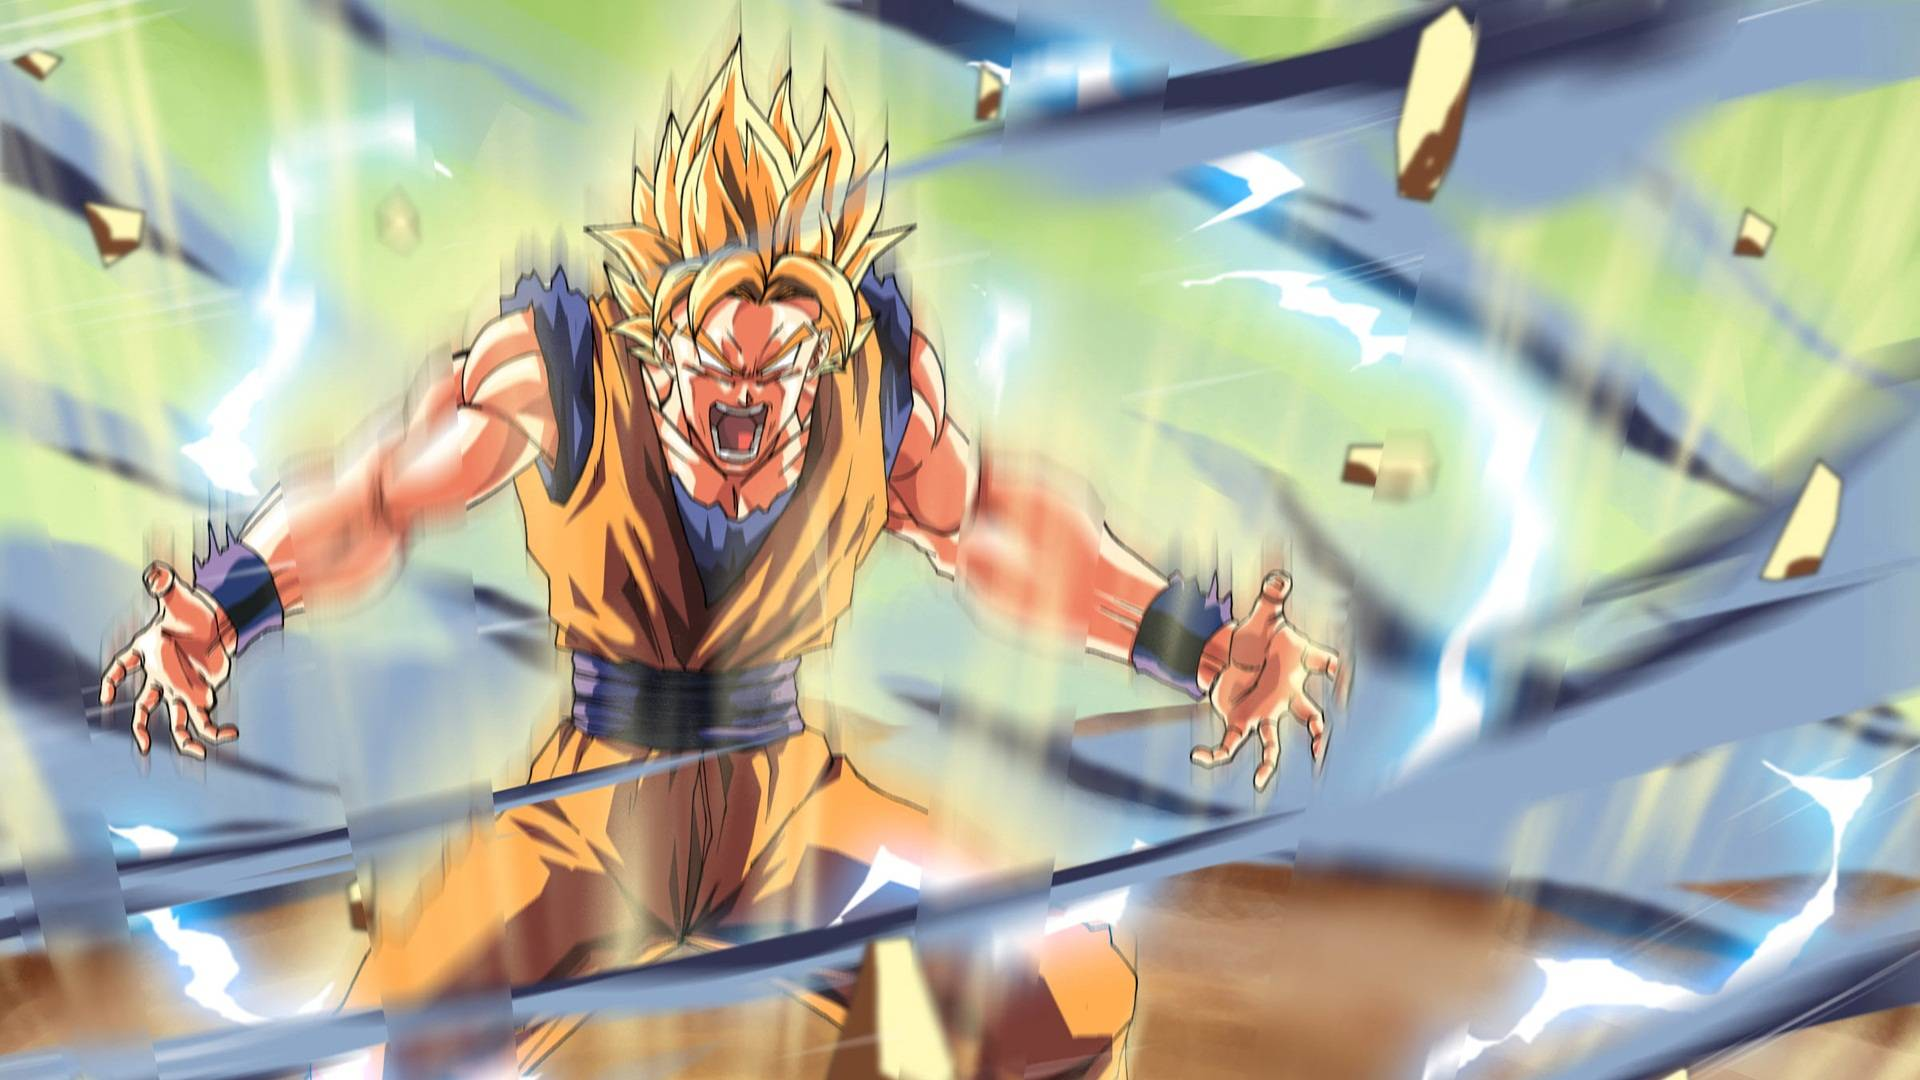 Dragon Ball Z Wallpapers Kamehameha Wallpaper Cave